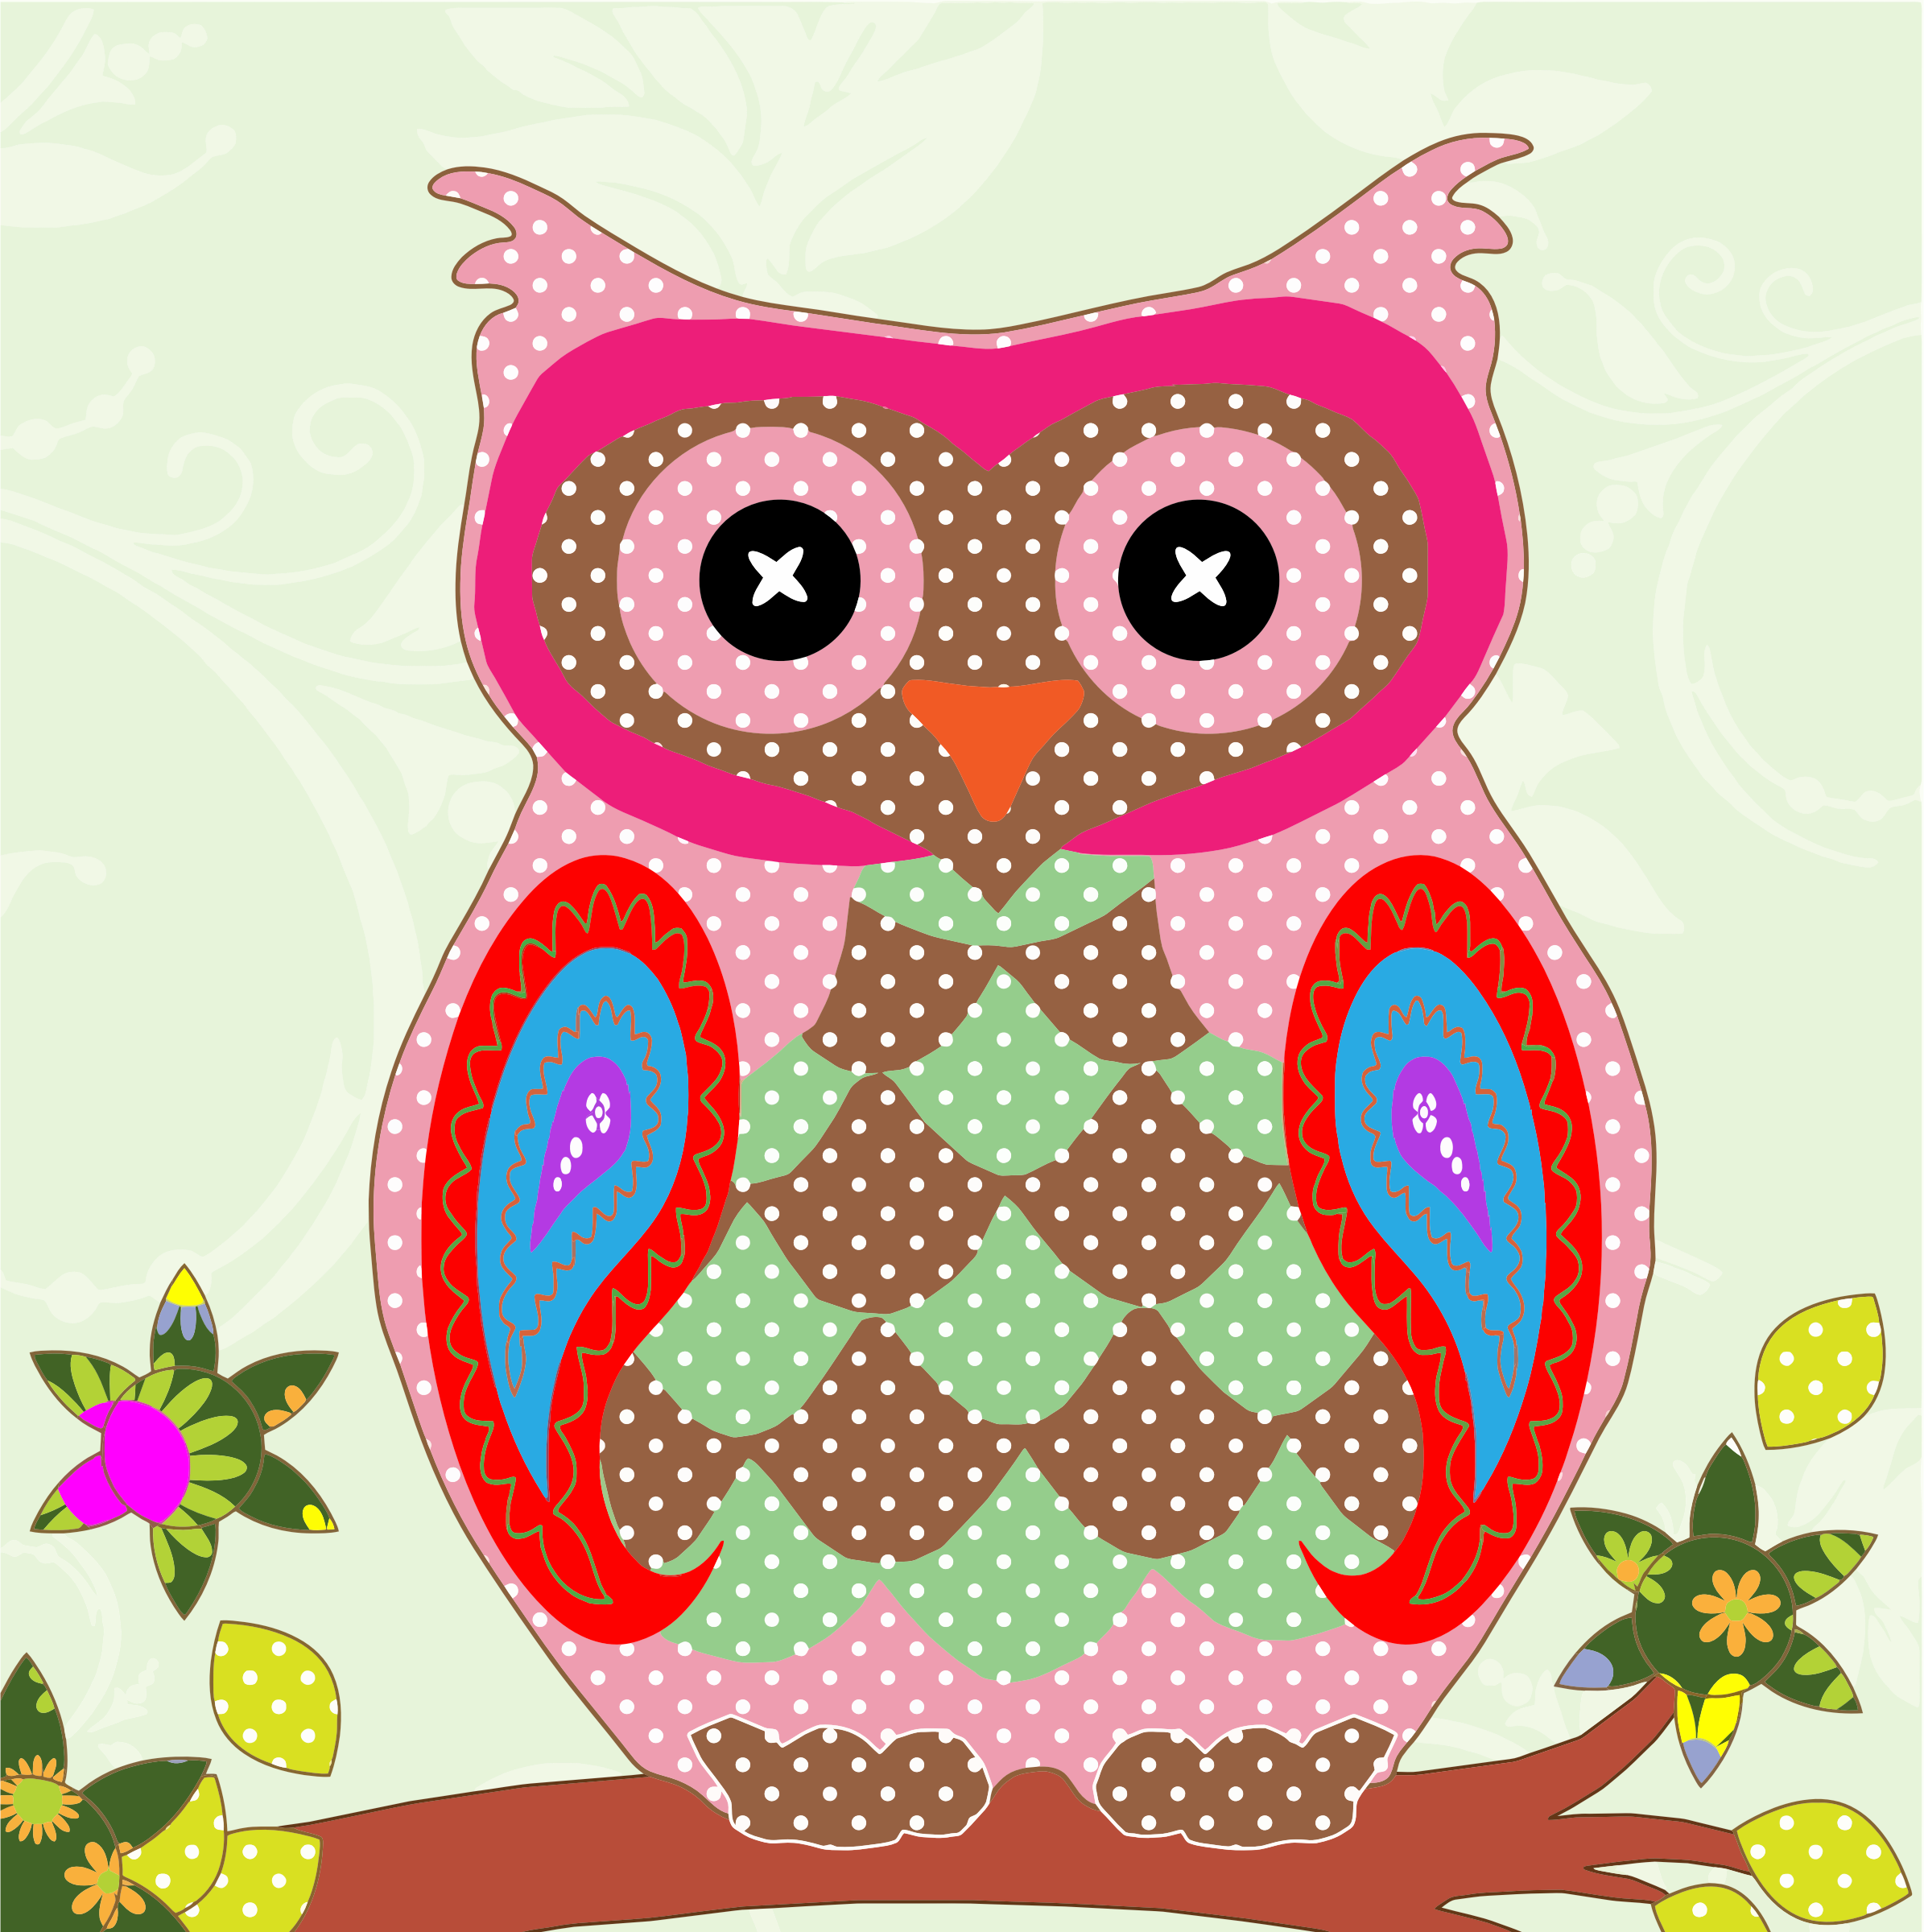 Patchwork clipart colorful Colorful Patchwork Clipart Owl Patchwork